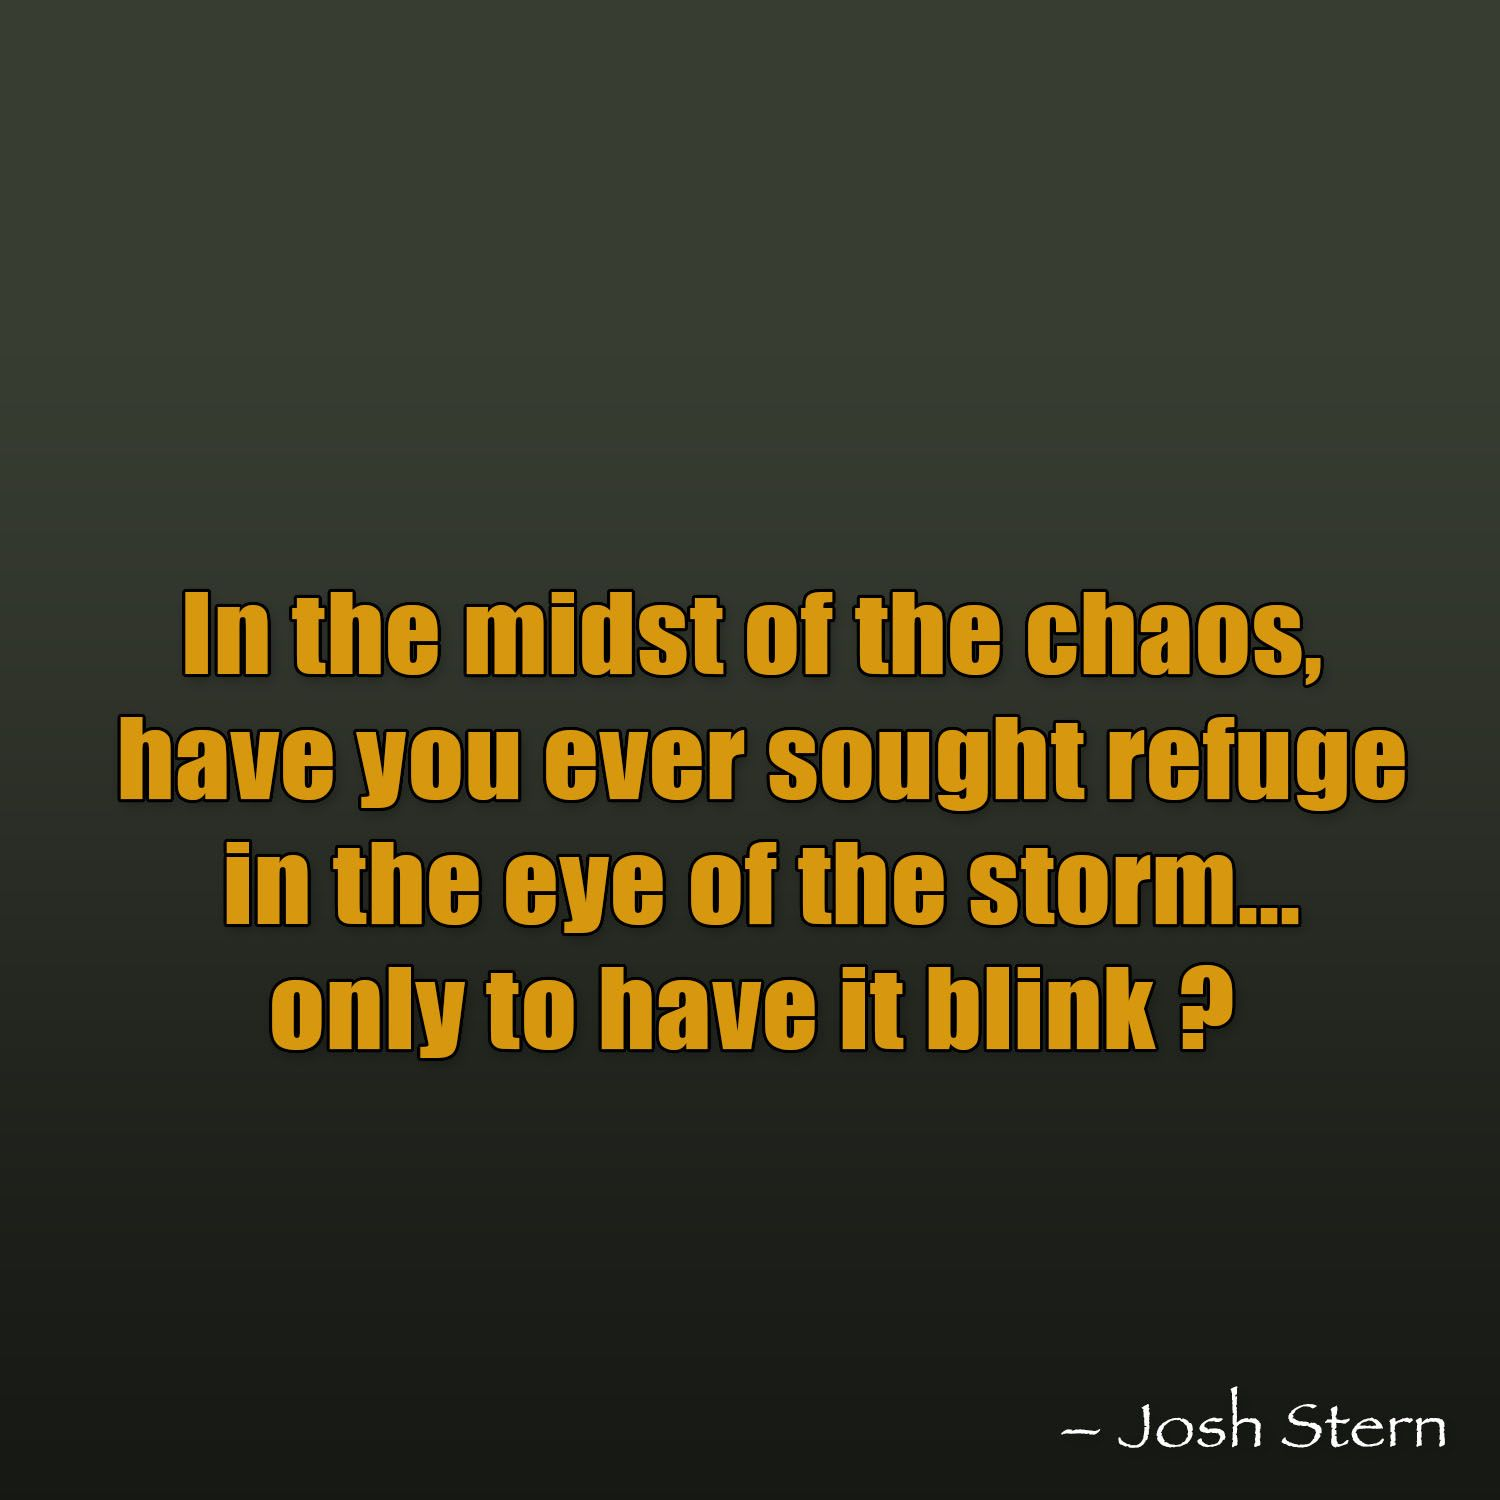 In the midst of the chaos, have you ever sought refuge in the eye of the storm....only to have it blink?